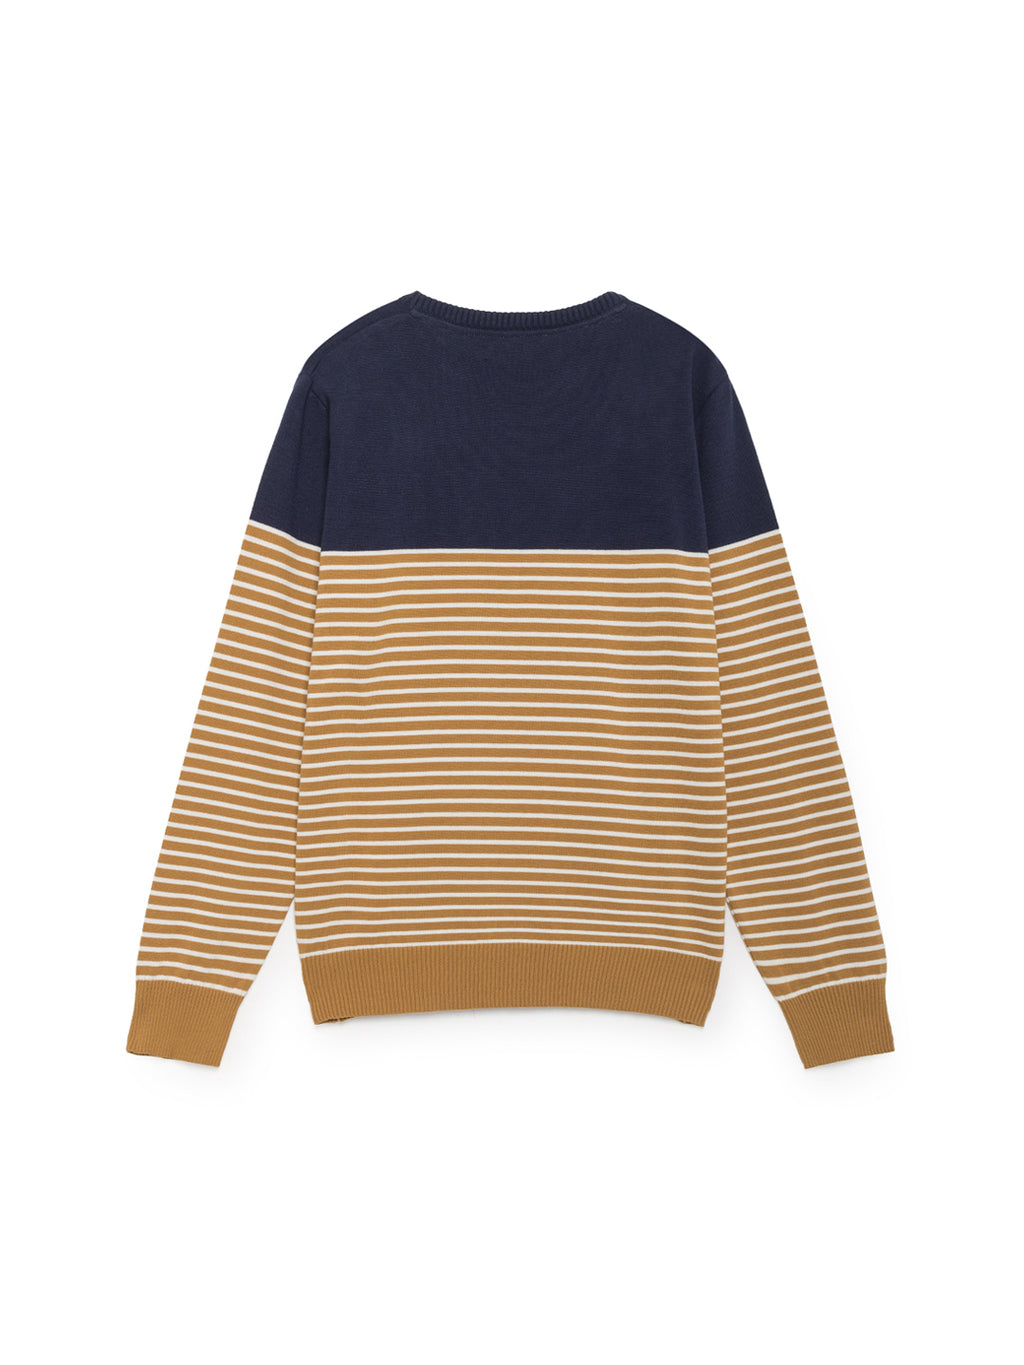 TWOTHIRDS Mens Knit: Delos - Navy back